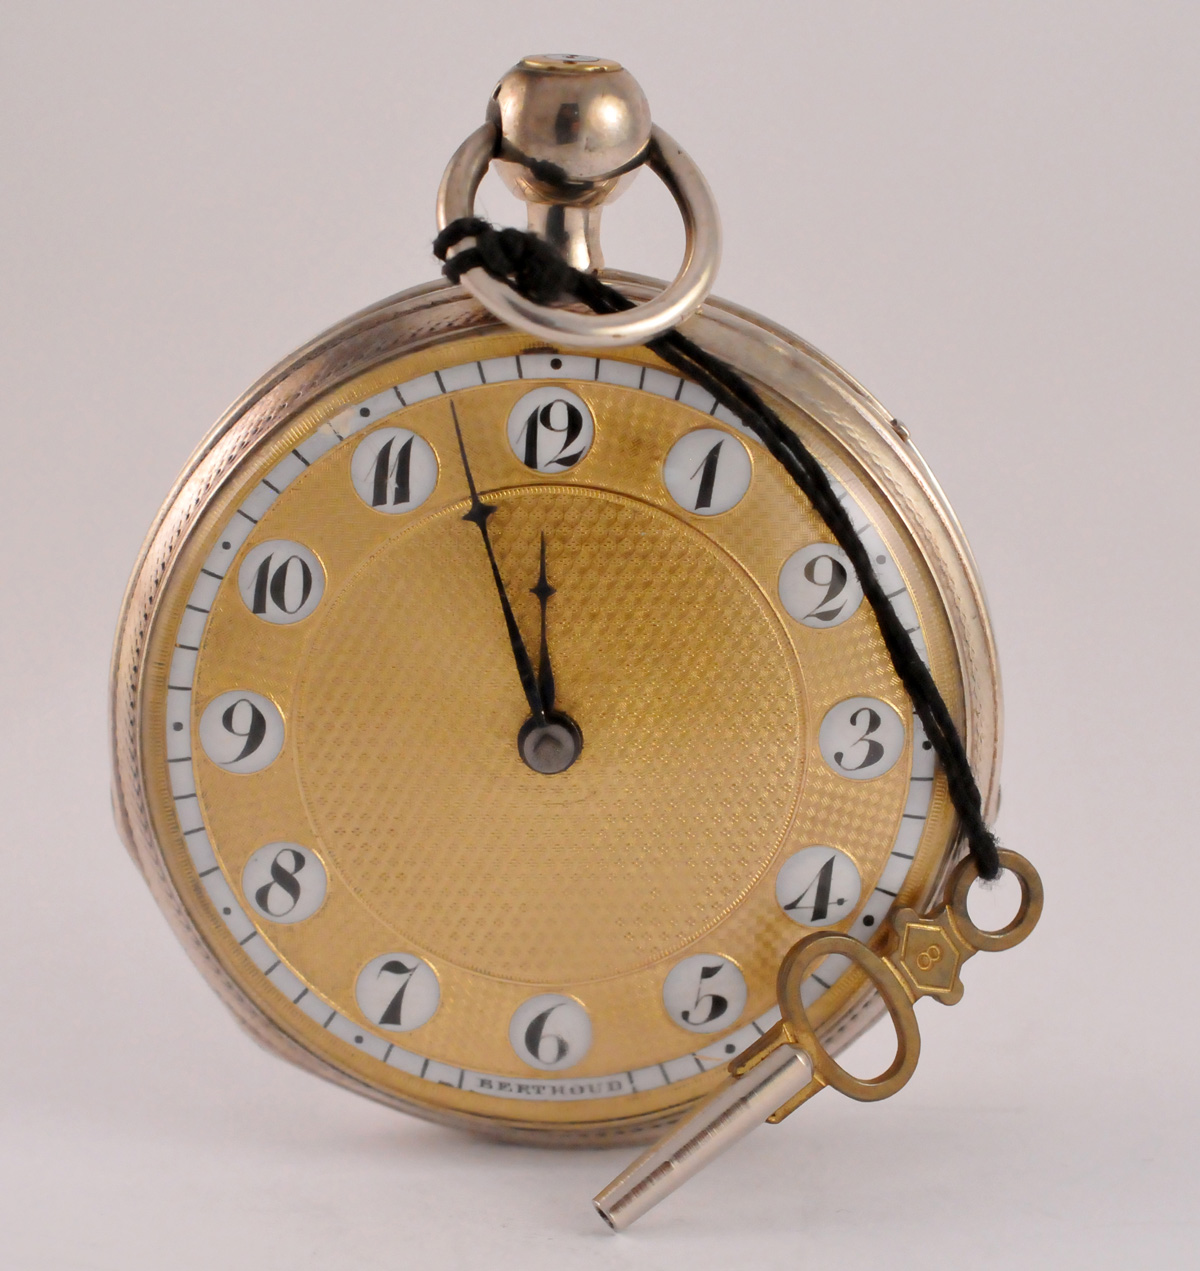 Pocket watch Berthoud